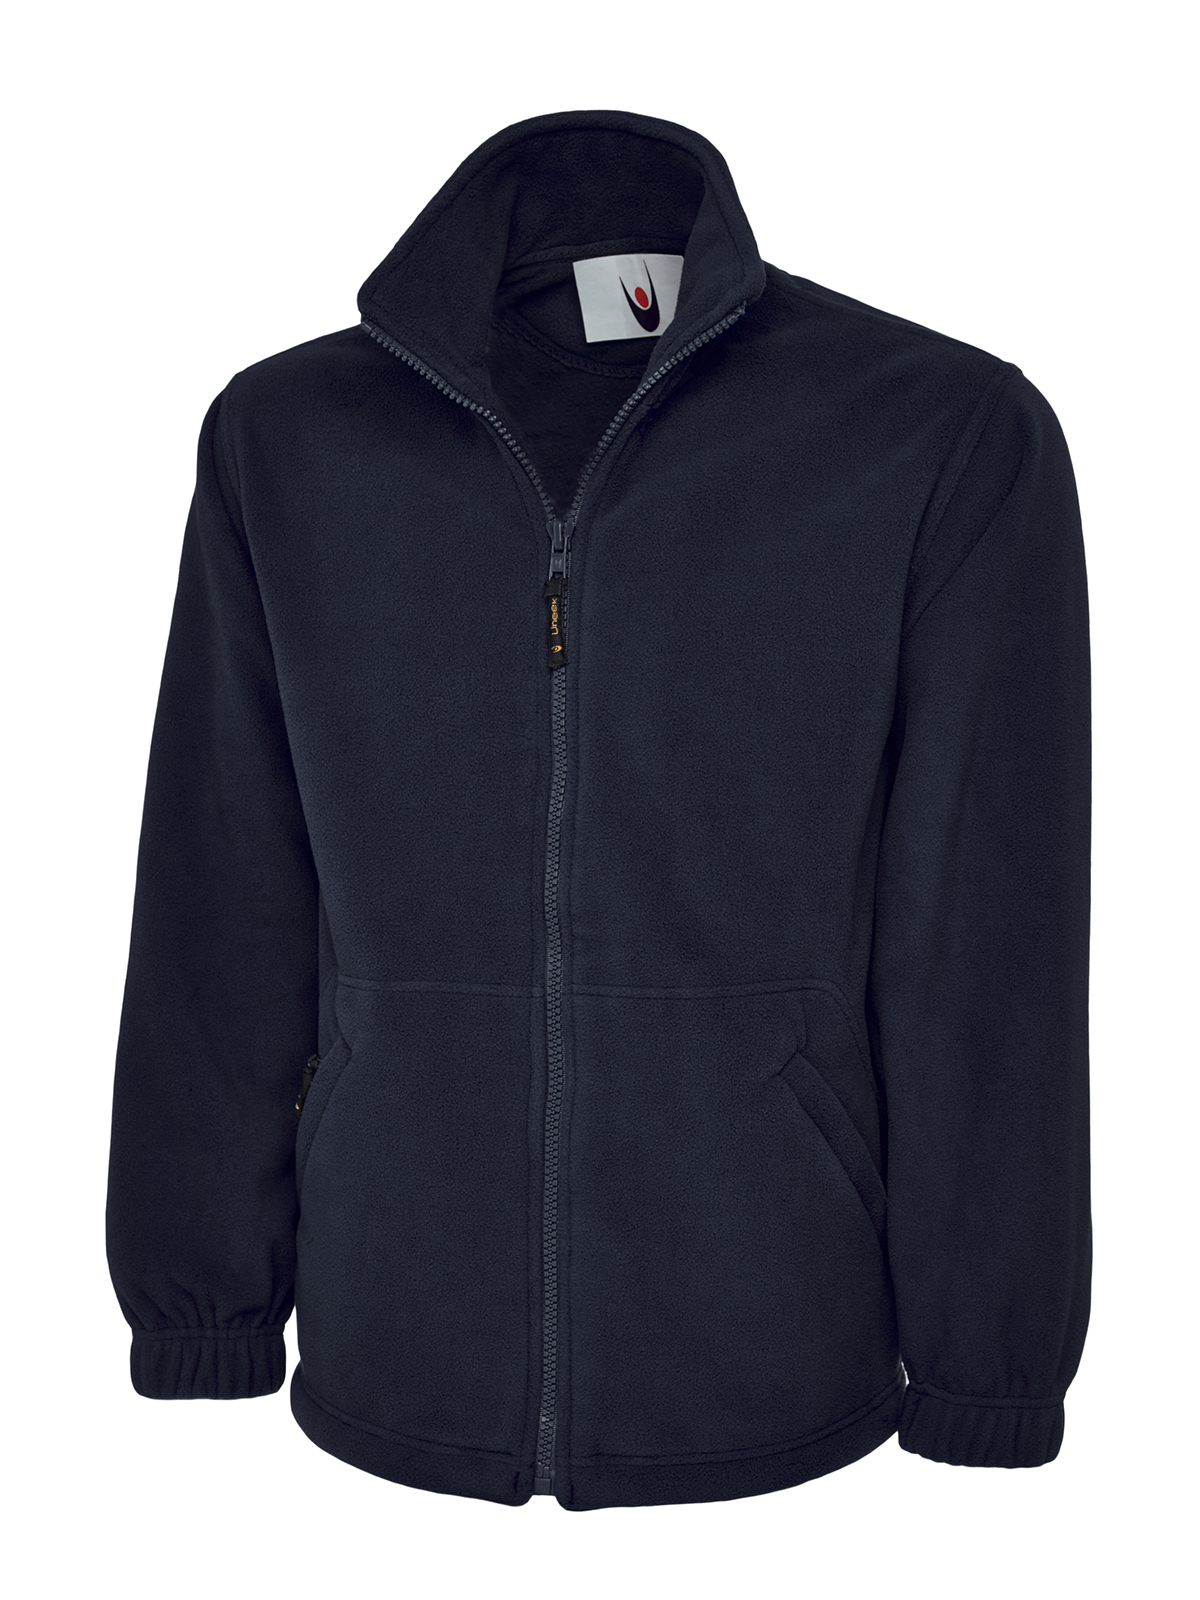 UNEEK UC601 PREMIUM FULL ZIP SOFTSHELL JACKET